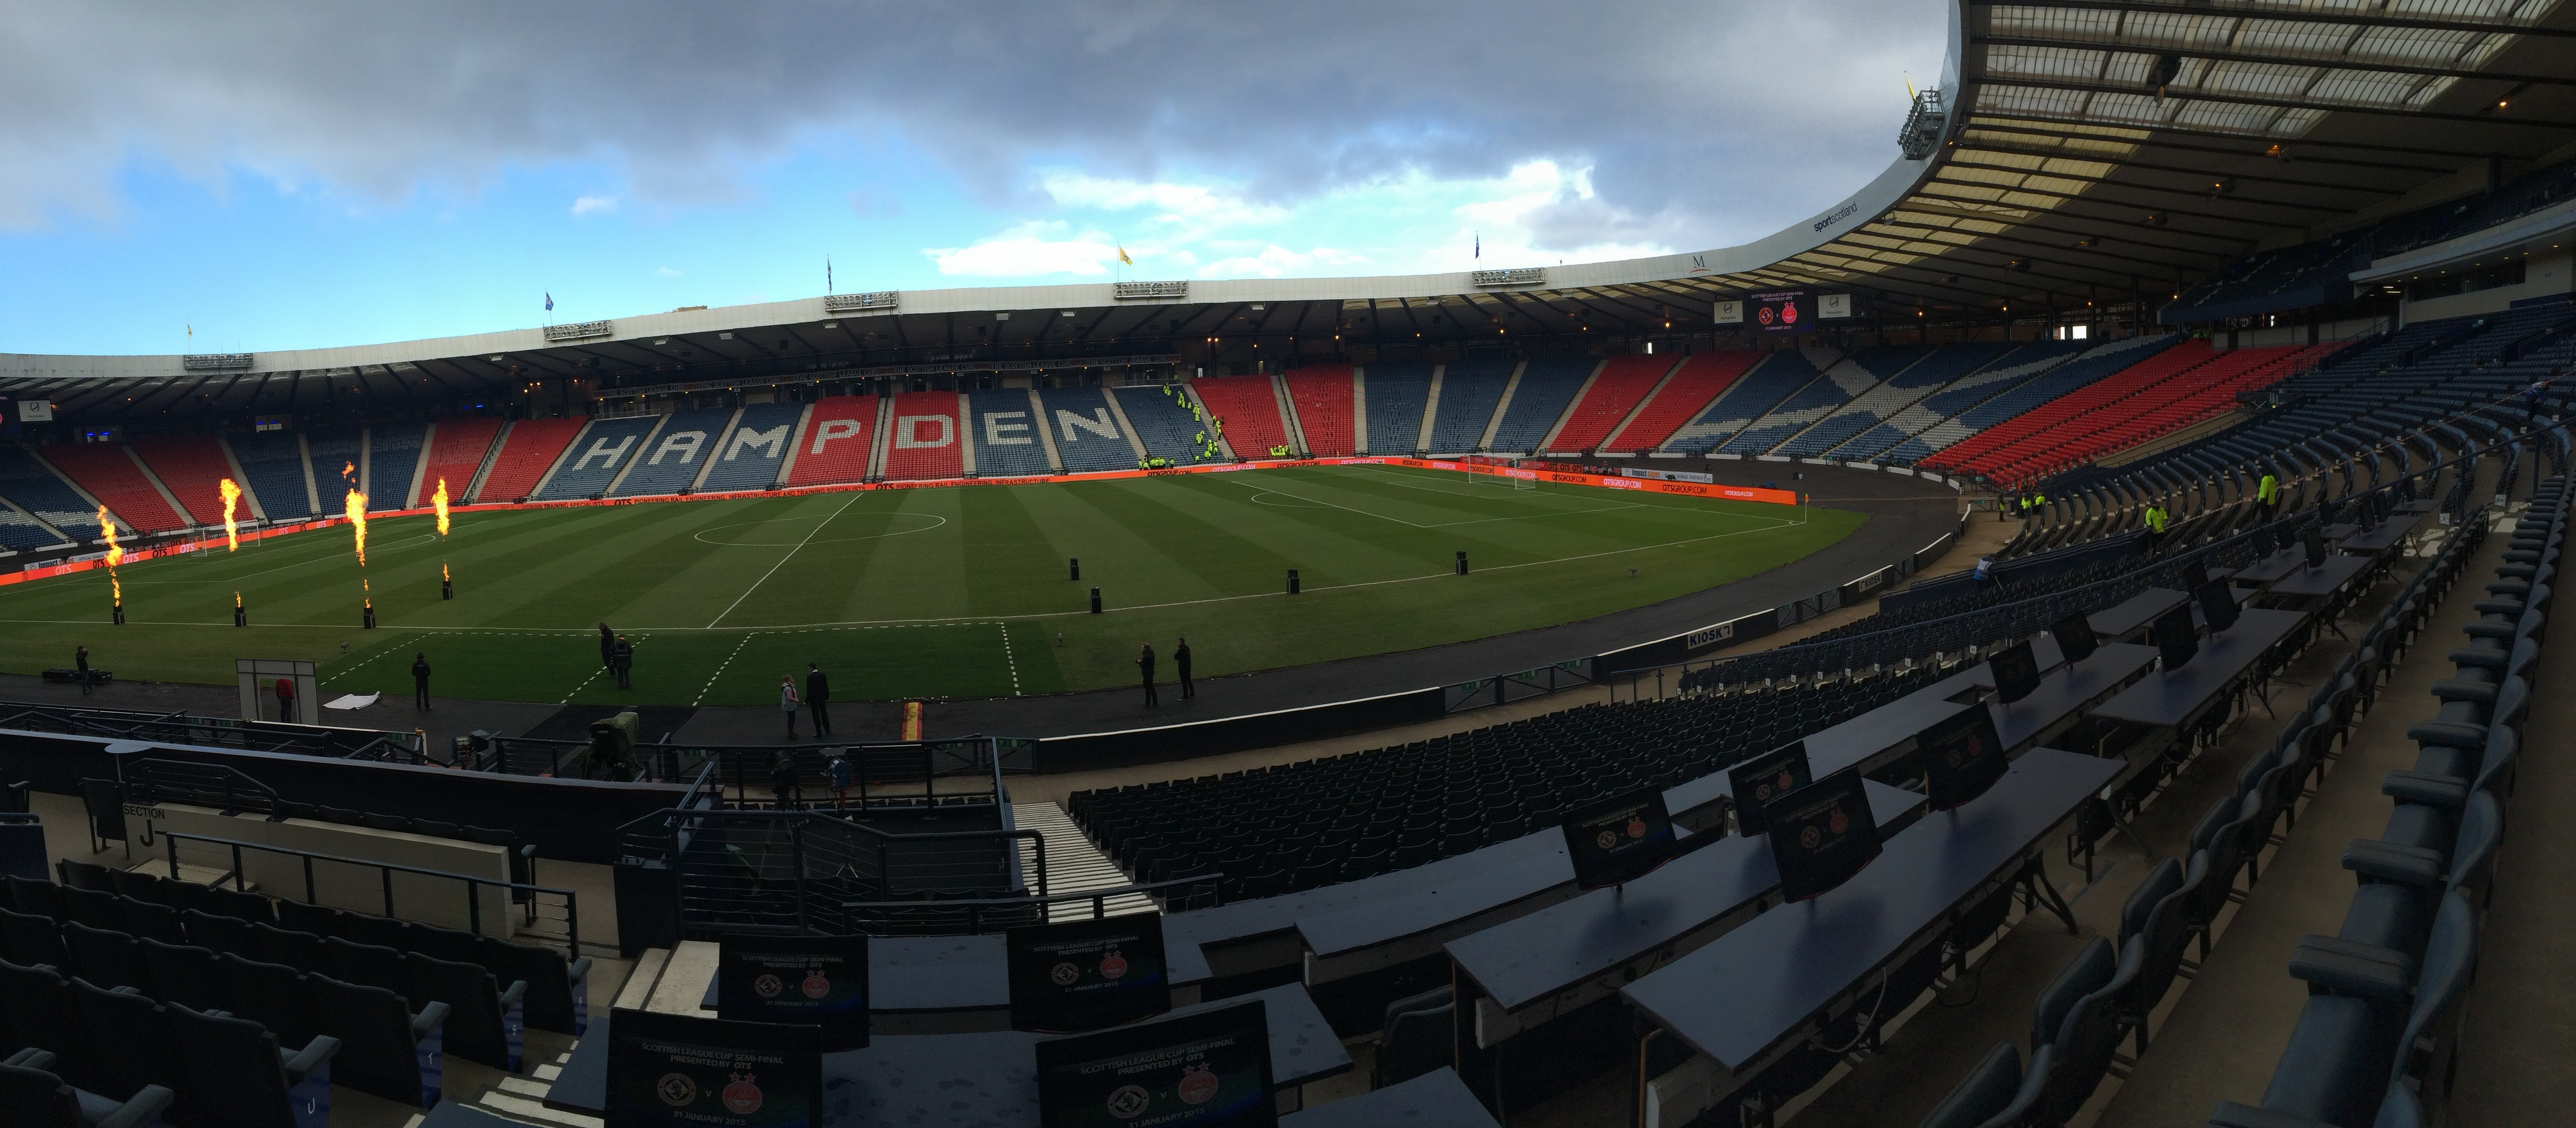 Welcome to Glasgow! Hampden looking glorious and ready for action.